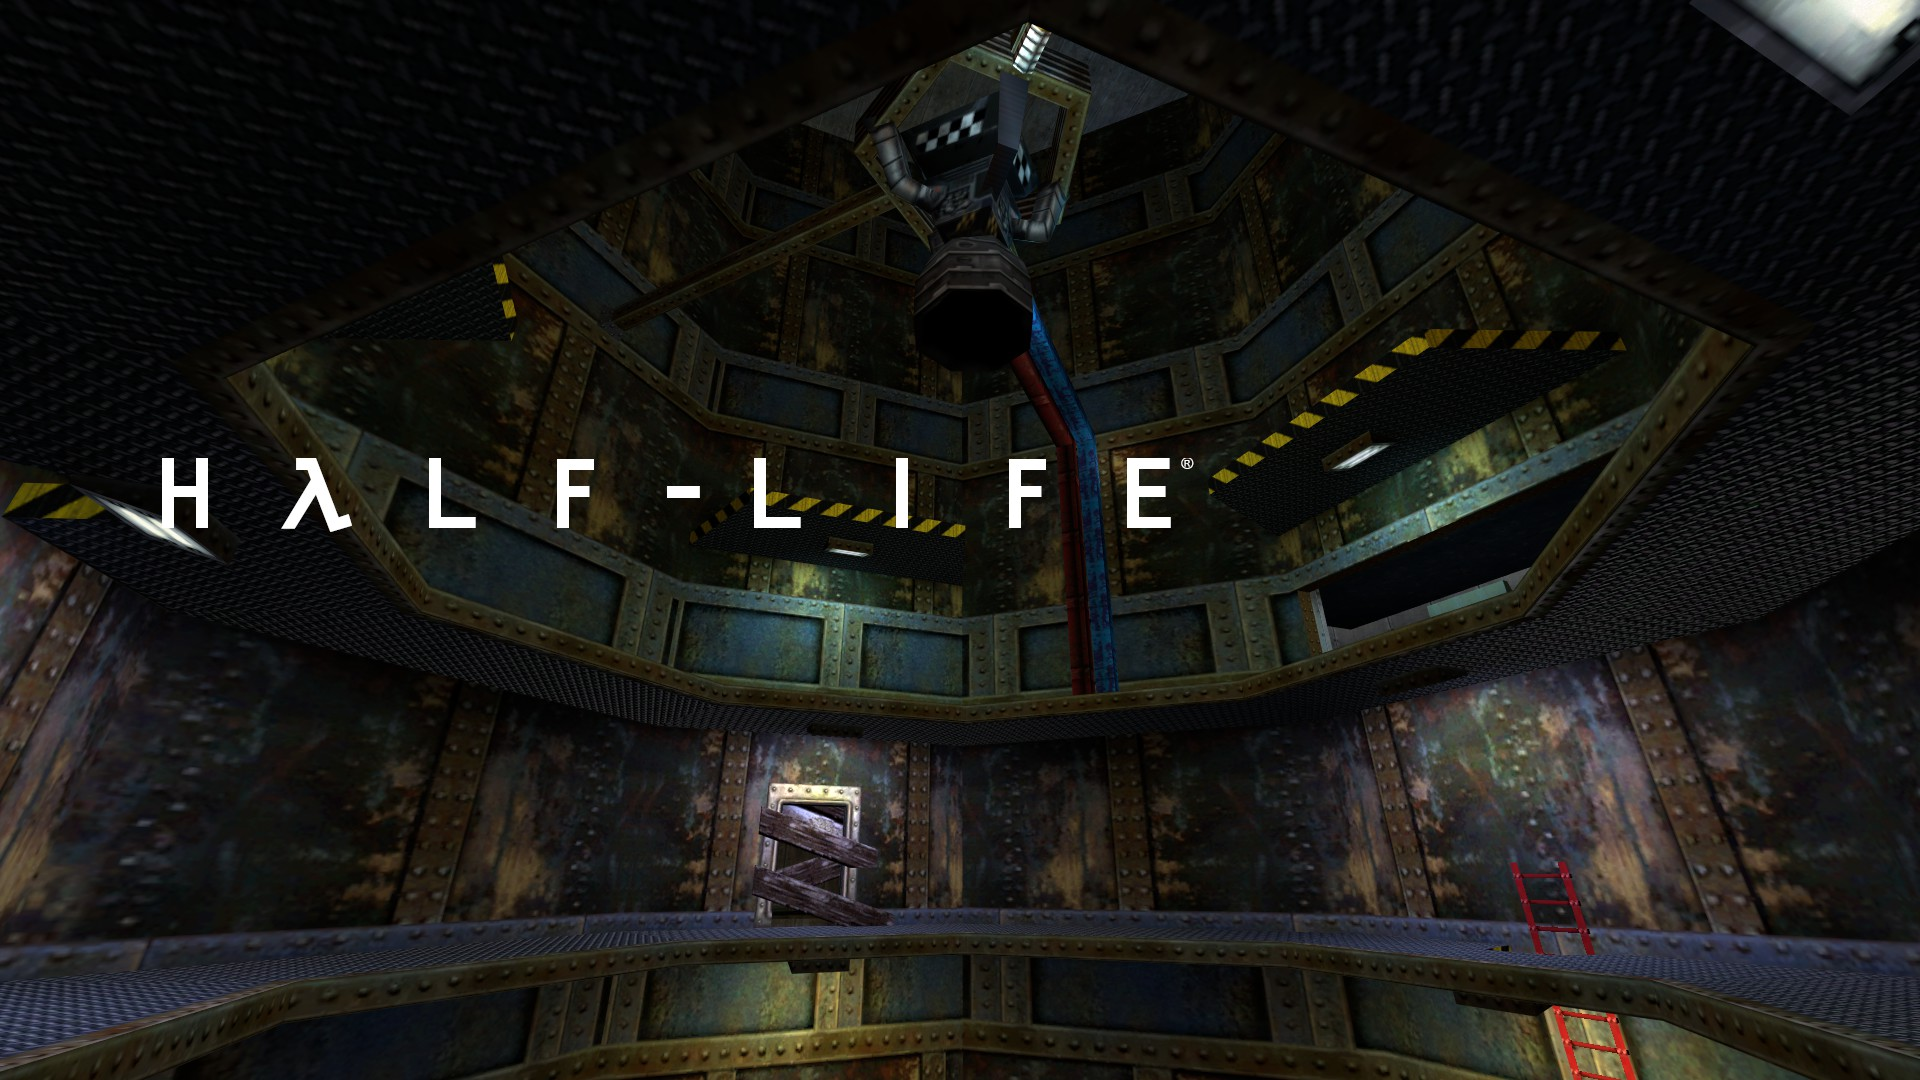 Half-Life turns 20, and we all feel very old | TechCrunch